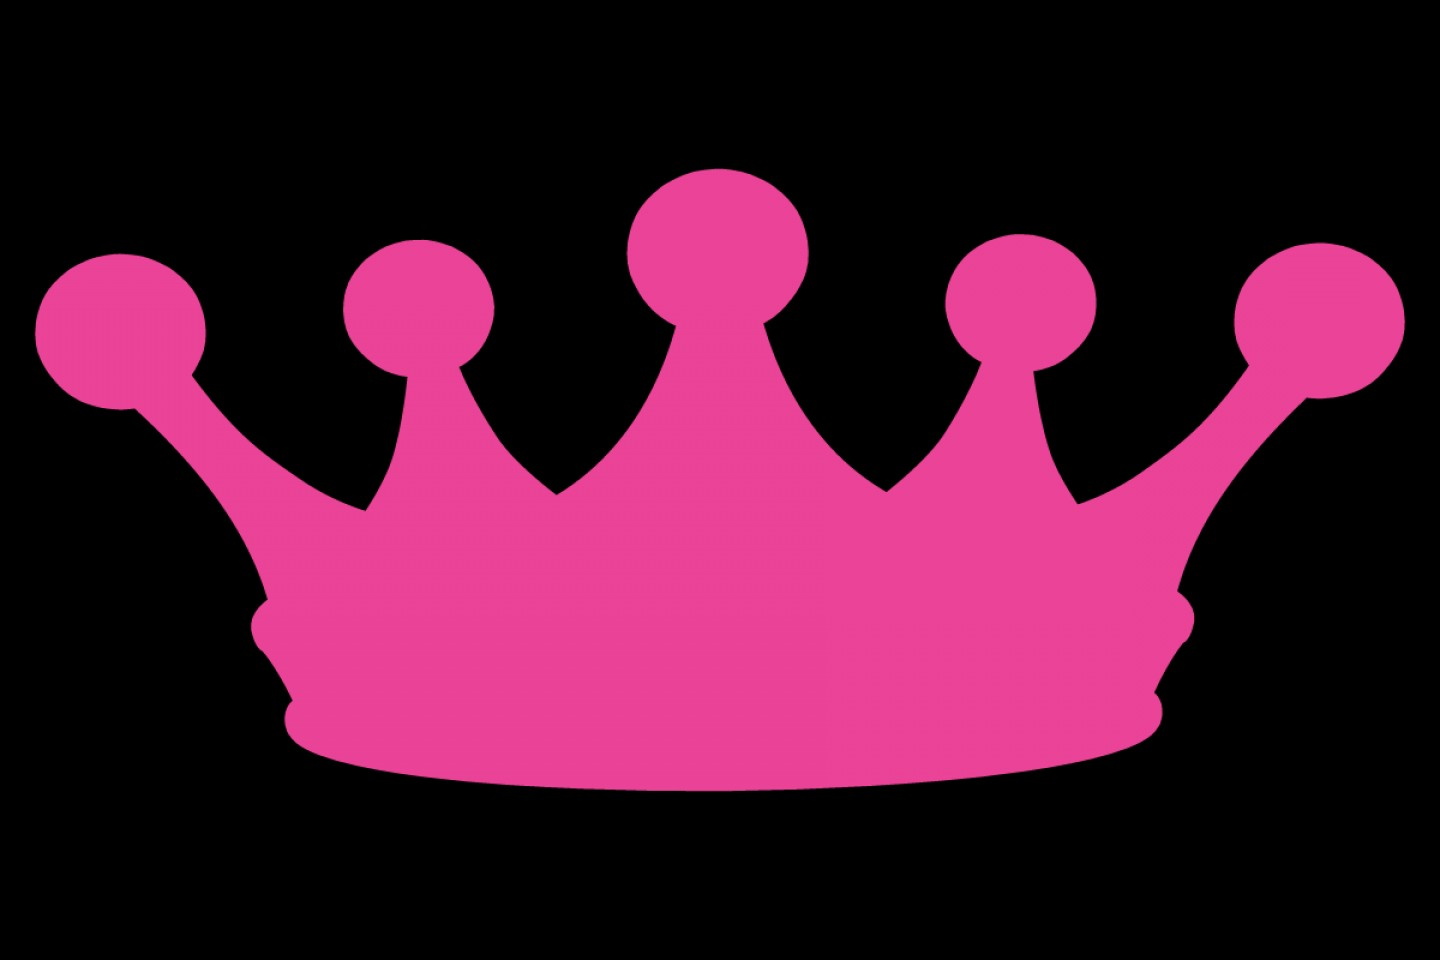 Transparent Queen Crown Vector: Crown Clipart Black And White Free